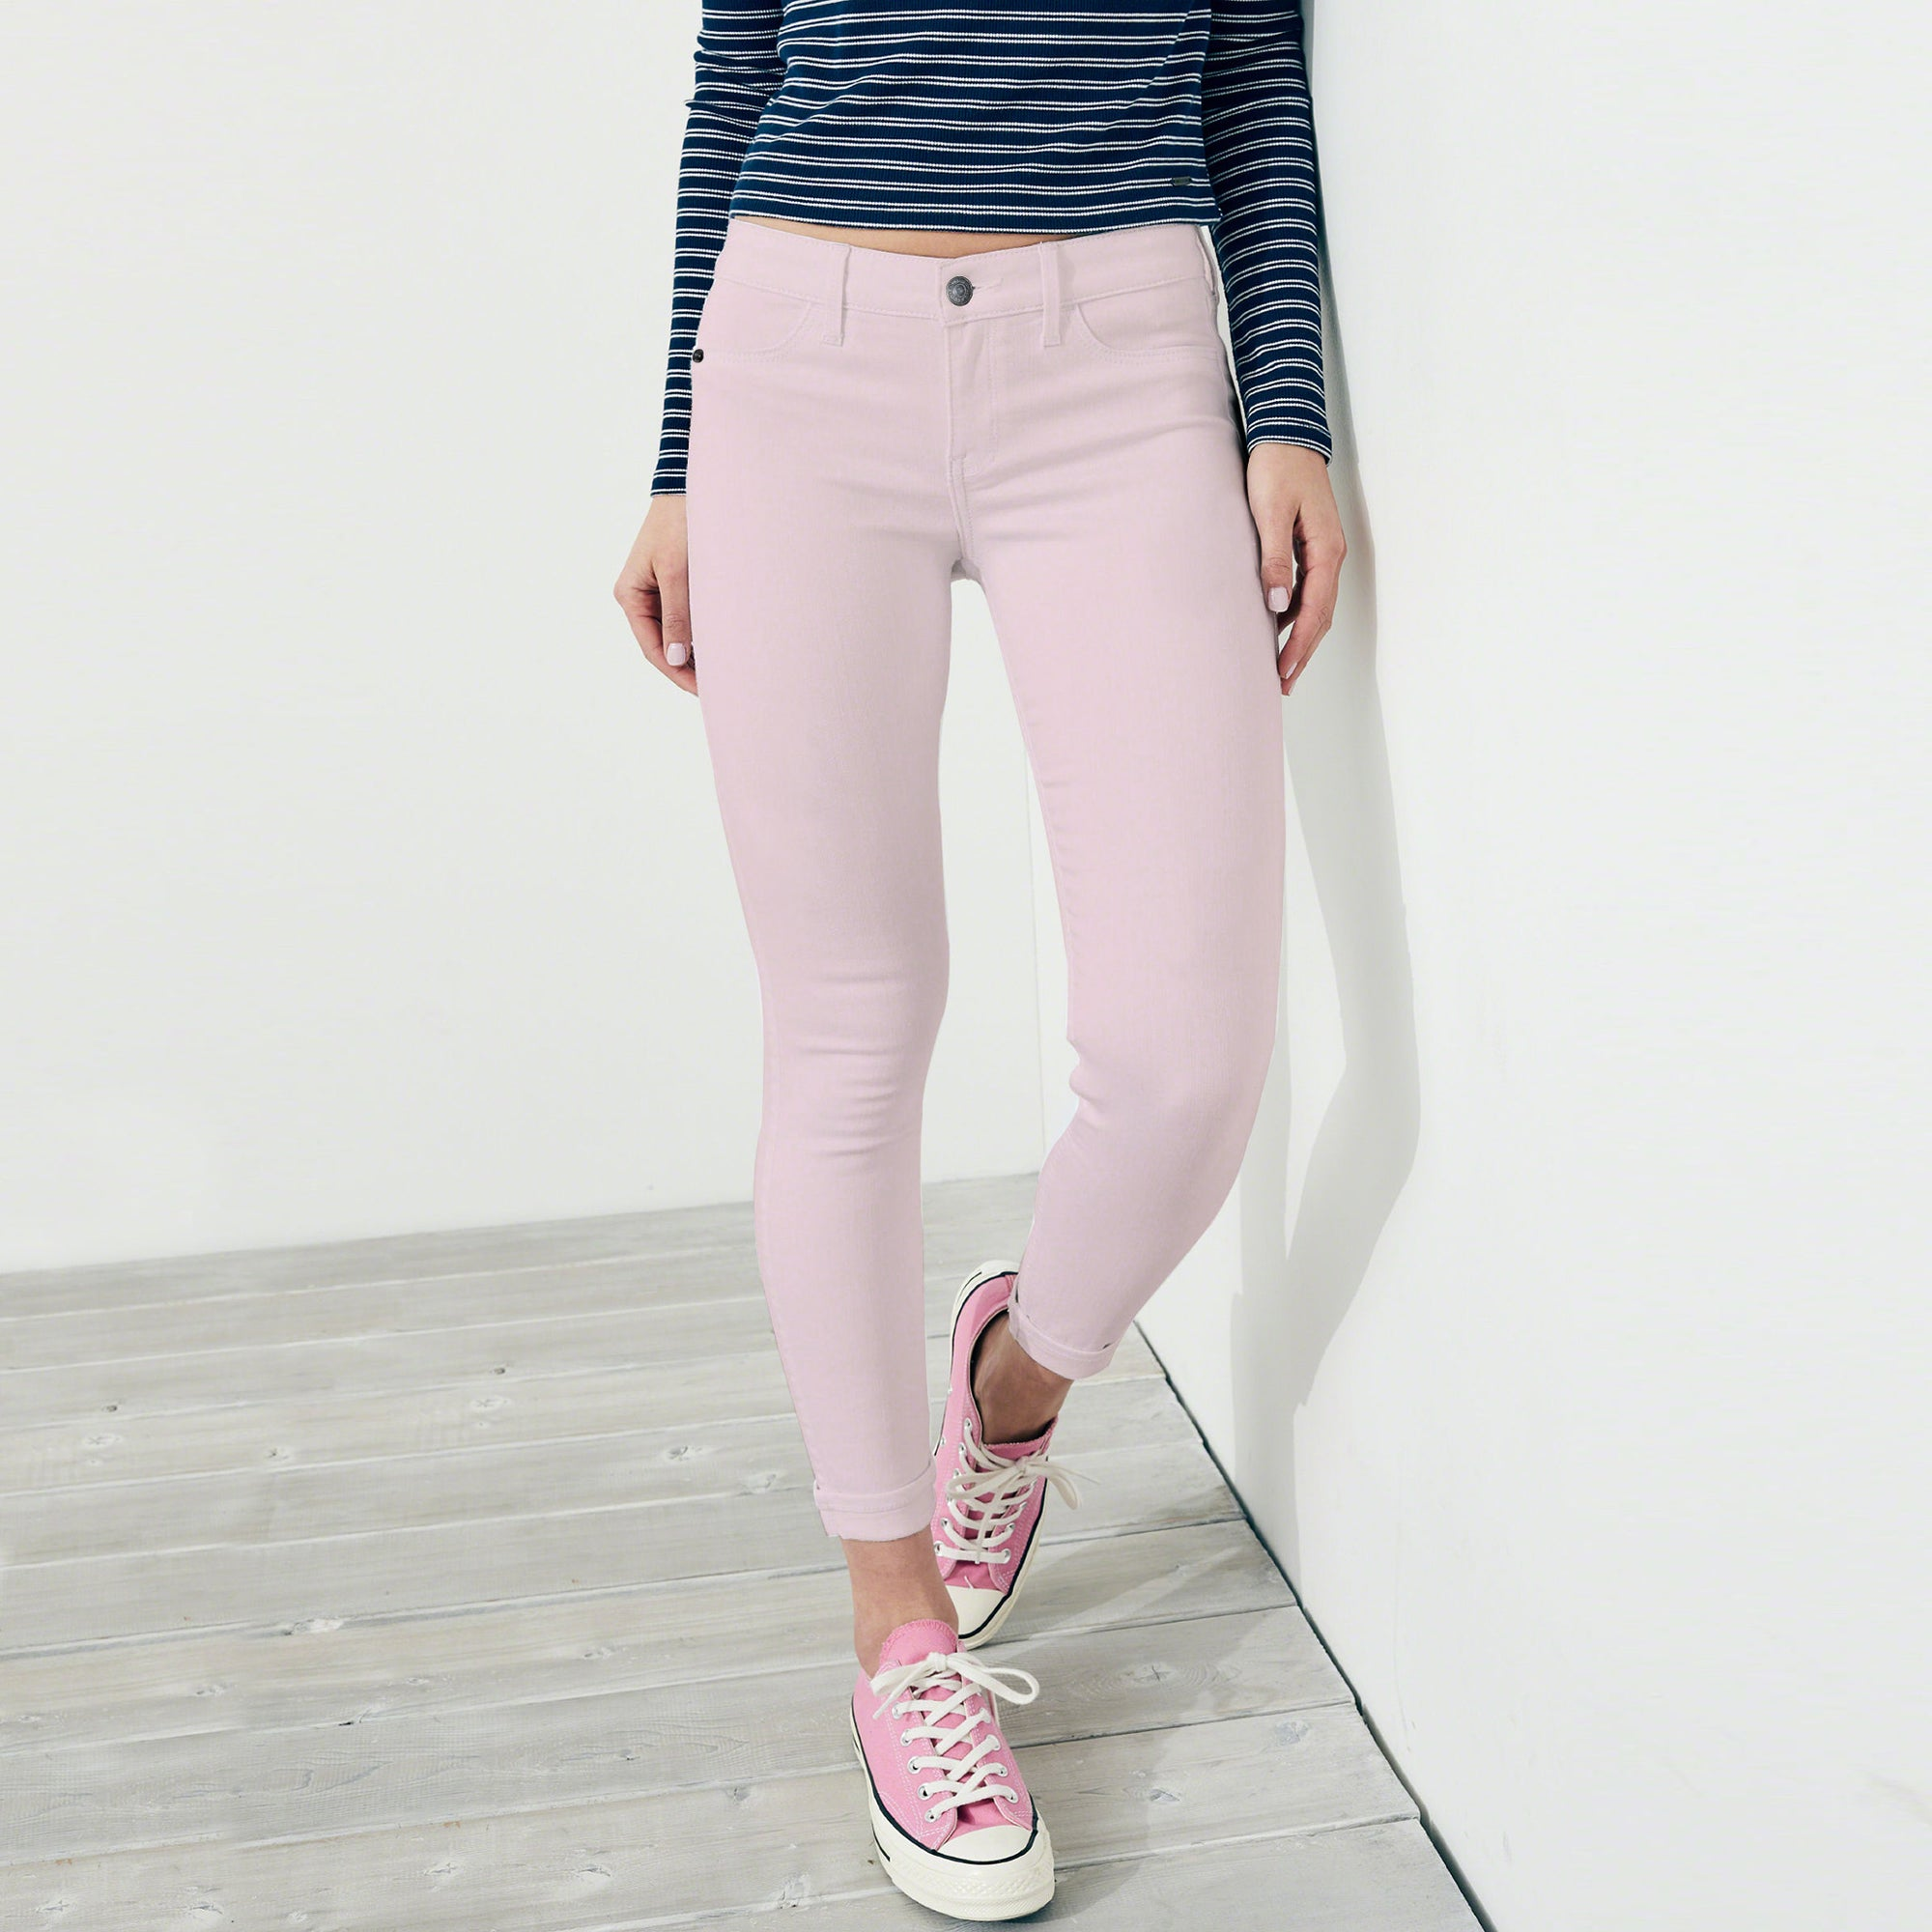 OLD NAVY Stretch Skinny Fit Denim For Ladies-Light Pink-BE6838